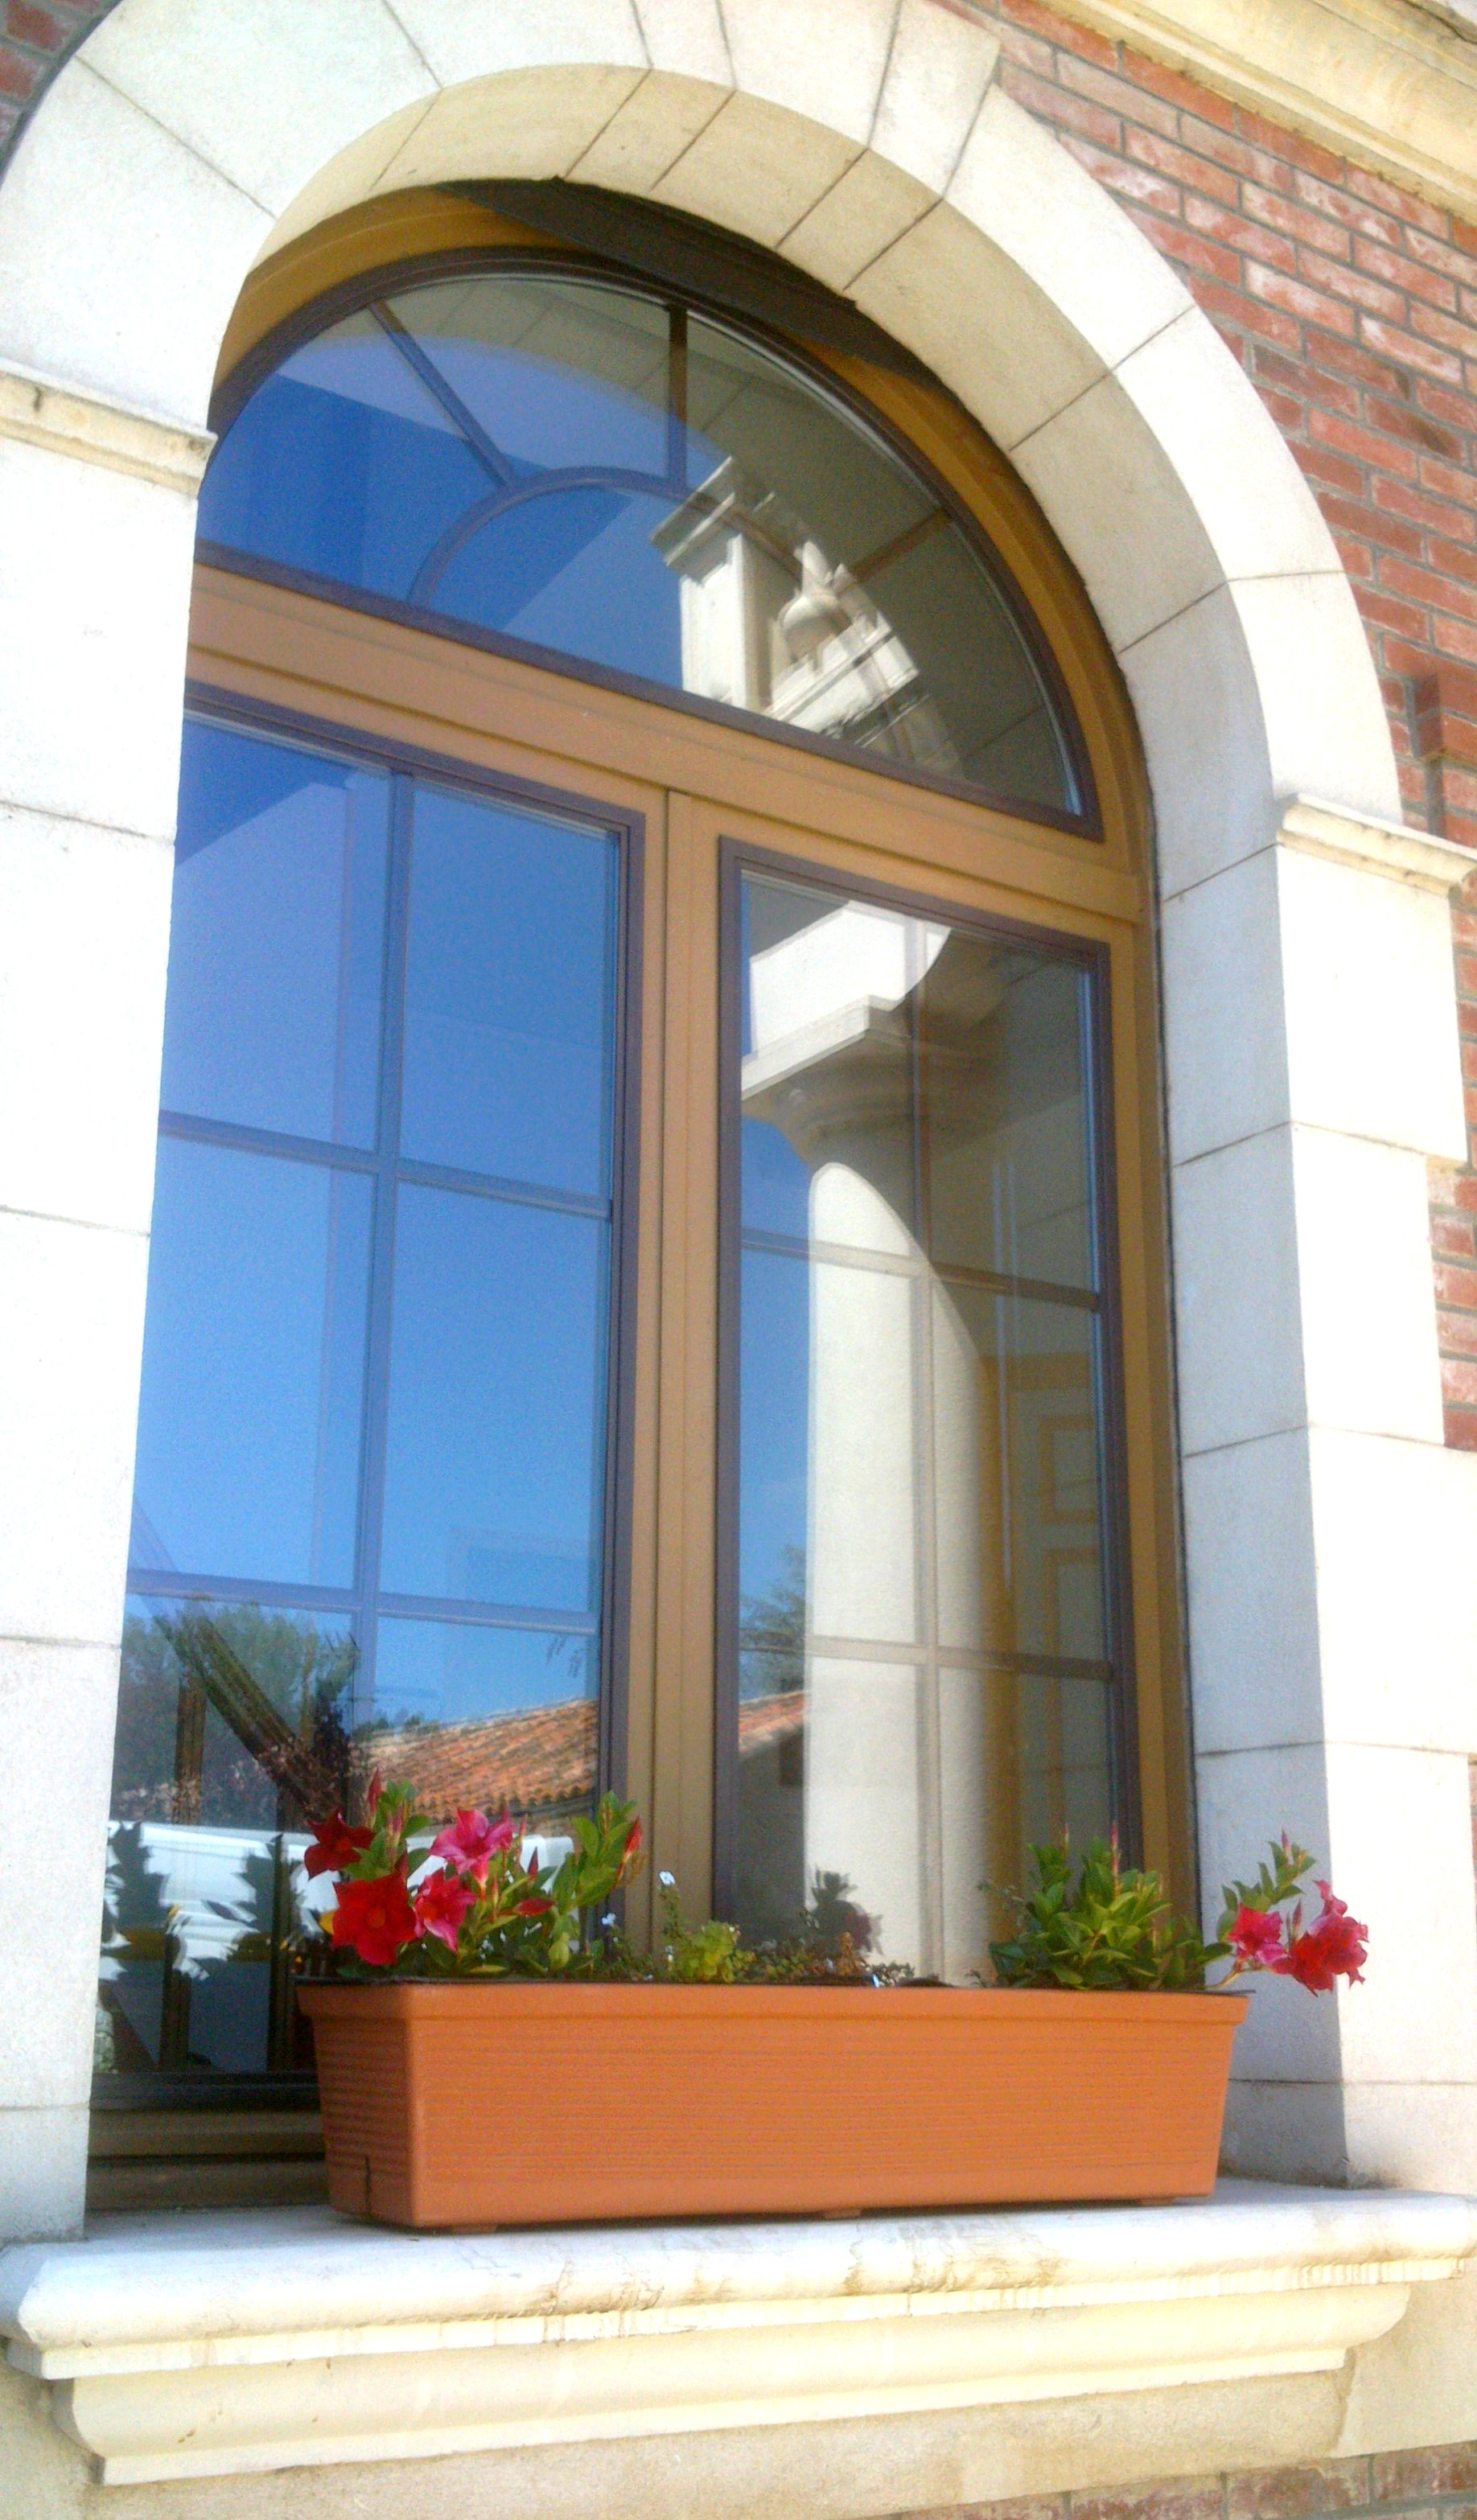 Fenetres Pvc Brico Depot Devis Construction Bordeaux Fort De France Vannes Soci T Tueslu